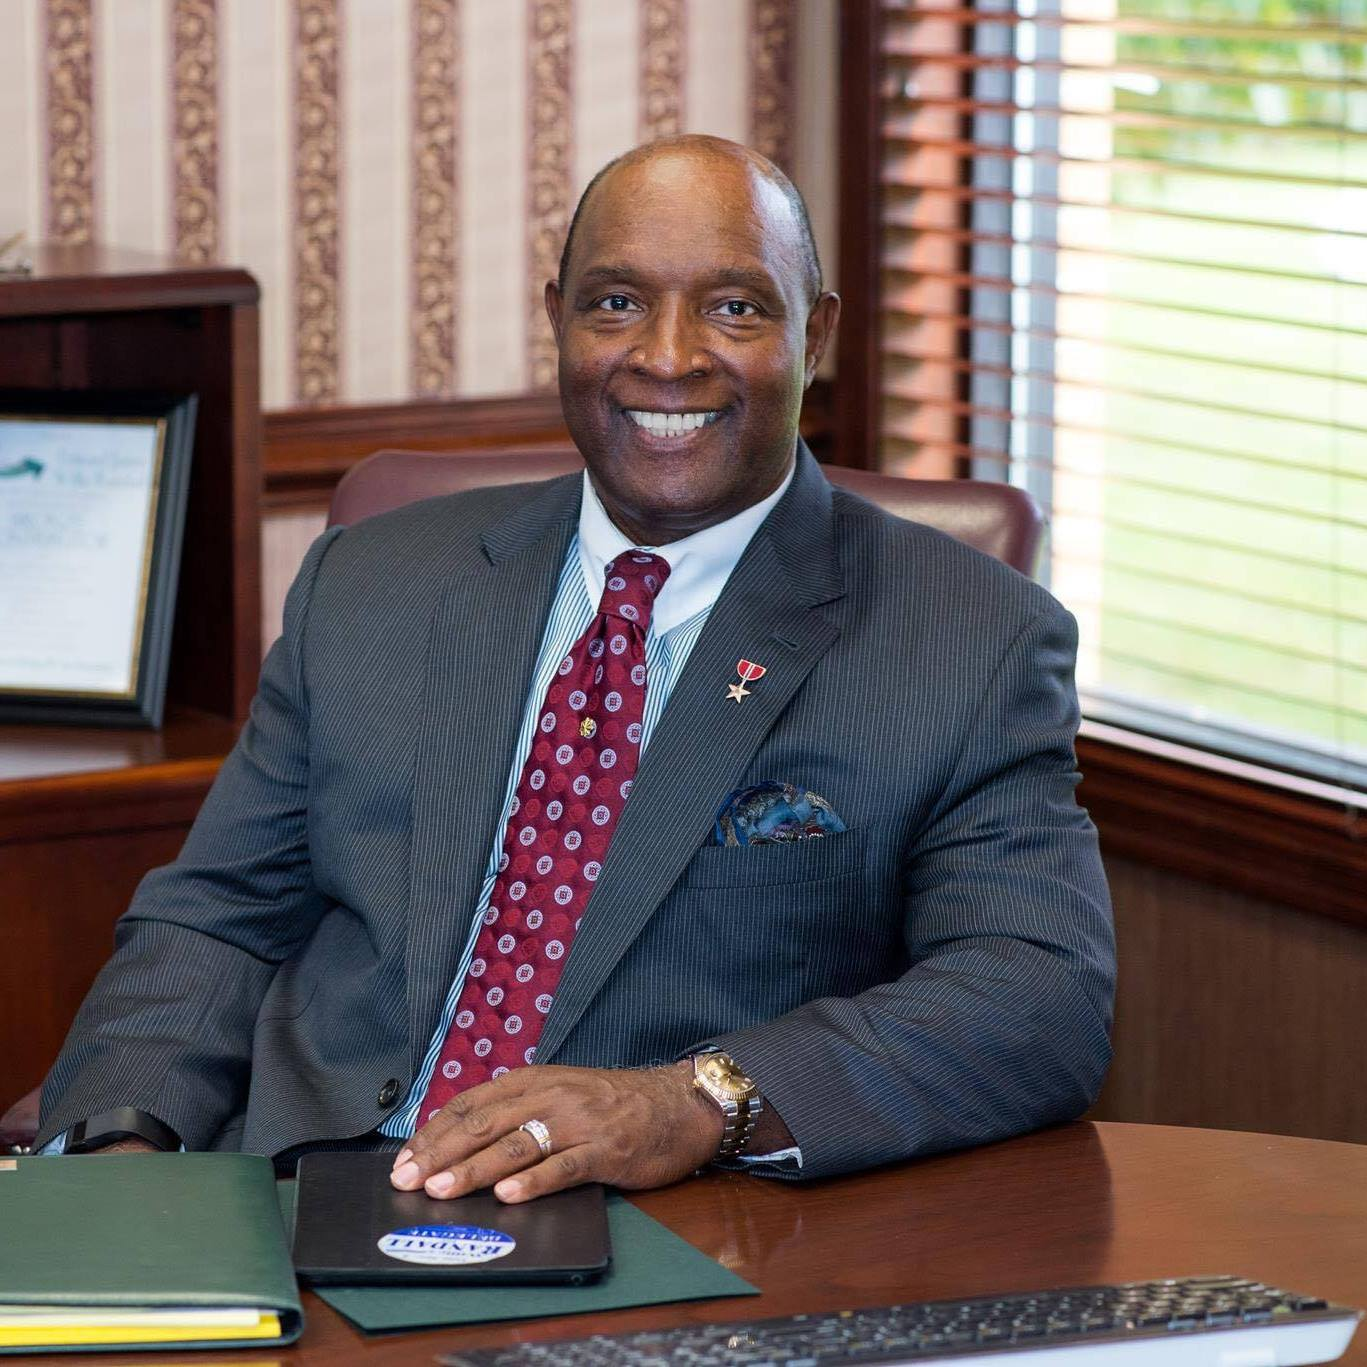 WILLIE RANDALL - Meet the candidate: Willie RandallWillie served in the United States Army for over 20 years, and served on the Northampton County Board of Supervisors for 4 years. He has also served on the Virginia State University Board of Visitors as the Vice Rector, Riverside Shore Memorial Hospital Board of Trustees, President of the Melfa Rotary Club and is currently a member of the Onancock Rotary Club. He was a commissioner the Accomack/Northampton Planning and Transportation Commissions, President of the Eastern Shore United Way, and chairman of the board of the Eastern Shore Chamber of Commerce, President of Cape Charles Accomac Alumni Chapter of Kappa Alpha Psi to name just a few of the community organizations he's worked with over the years.Upon graduating from Virginia State University, he was commissioned as a second lieutenant in the United States Army, serving in the Persian Gulf War. He was awarded the Bronze Star Medal for service in a combat zone and retired as a Major in 1996. He and his wife Shirley, an anesthesiologist and Pain Management Physician, moved to Virginia's Eastern Shore upon his retirement from the United States Army. They have one son, Xavier, and a grandson Ashton.House District 100:Secretary Clinton won this district by 2 percent of the vote. The 100th encompasses parts of Accomack County, Norfolk City, and Northampton County, and is currently represented by Rob Bloxom (R).Click here for more district details.Just one example of why Rob needs to go:Since arriving in the General Assembly in 2014, Rob has been ineffective. He has consistently introduced a meager number of bills each session; in 2014, Rob didn't introduce a single piece of legislation. Instead, he spends his time voting the party line on subjects concerning concealed handguns, prevailing wages, refugee resettlement, health care, and more. The 100th district's voters deserve better -- an active advocate for the issues that matter most to them.Contact the campaign: i